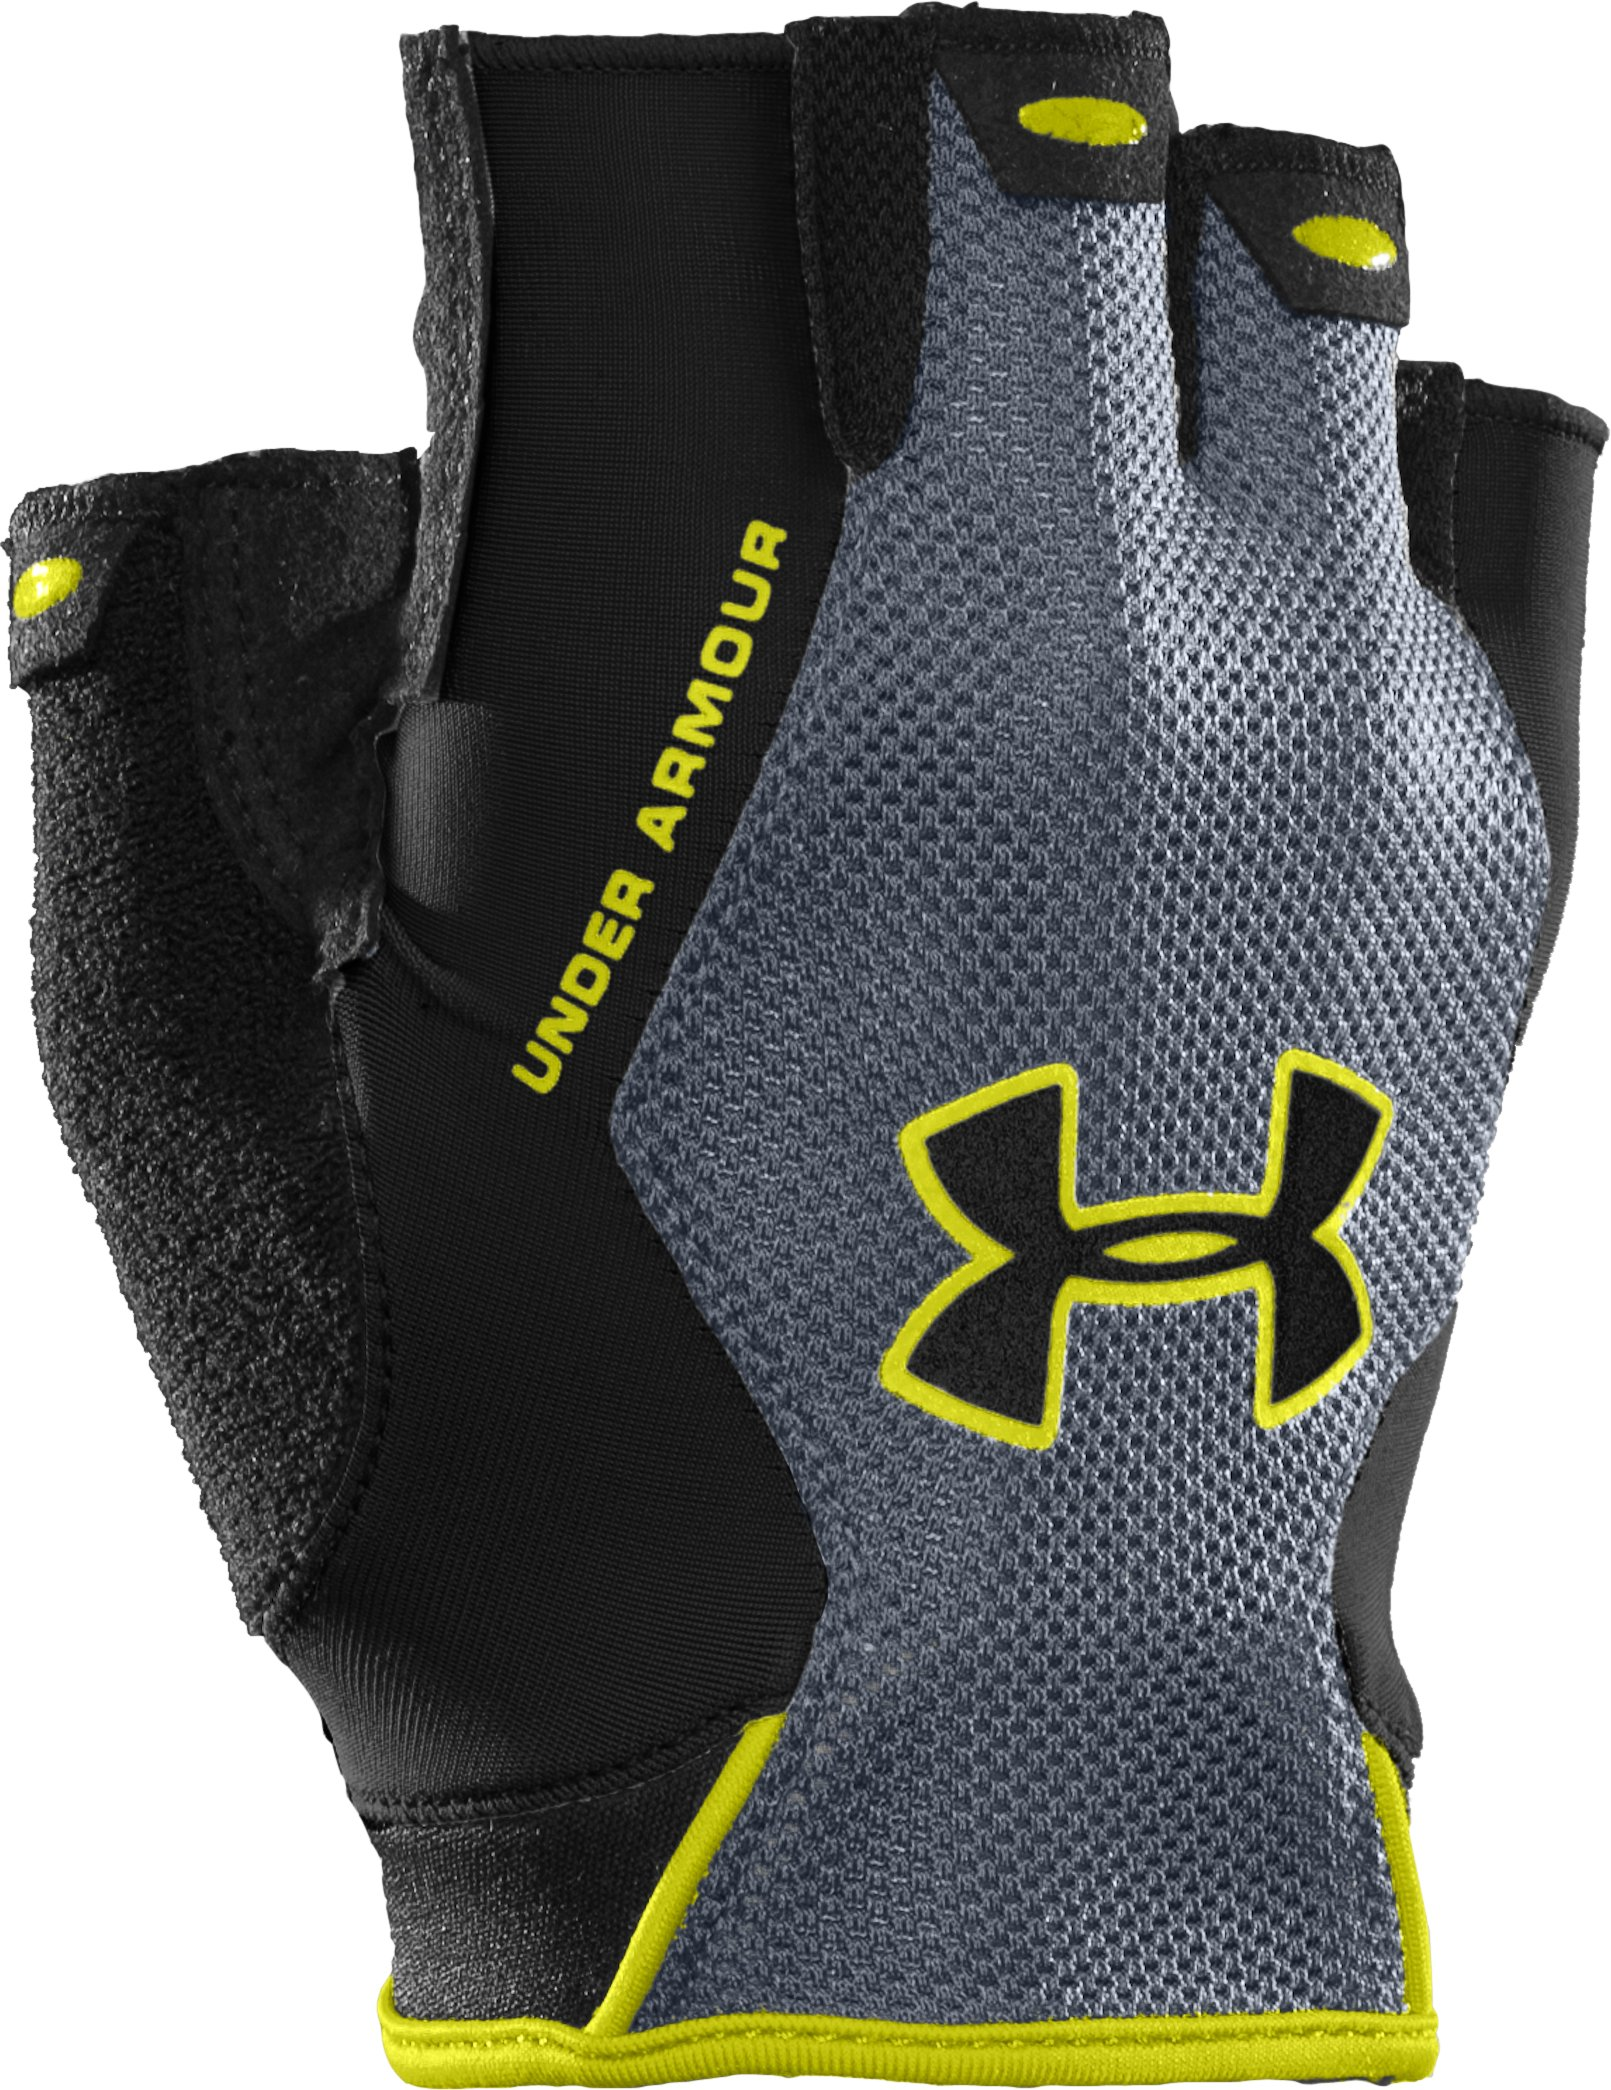 Men's CTR Trainer HF Gloves, Black